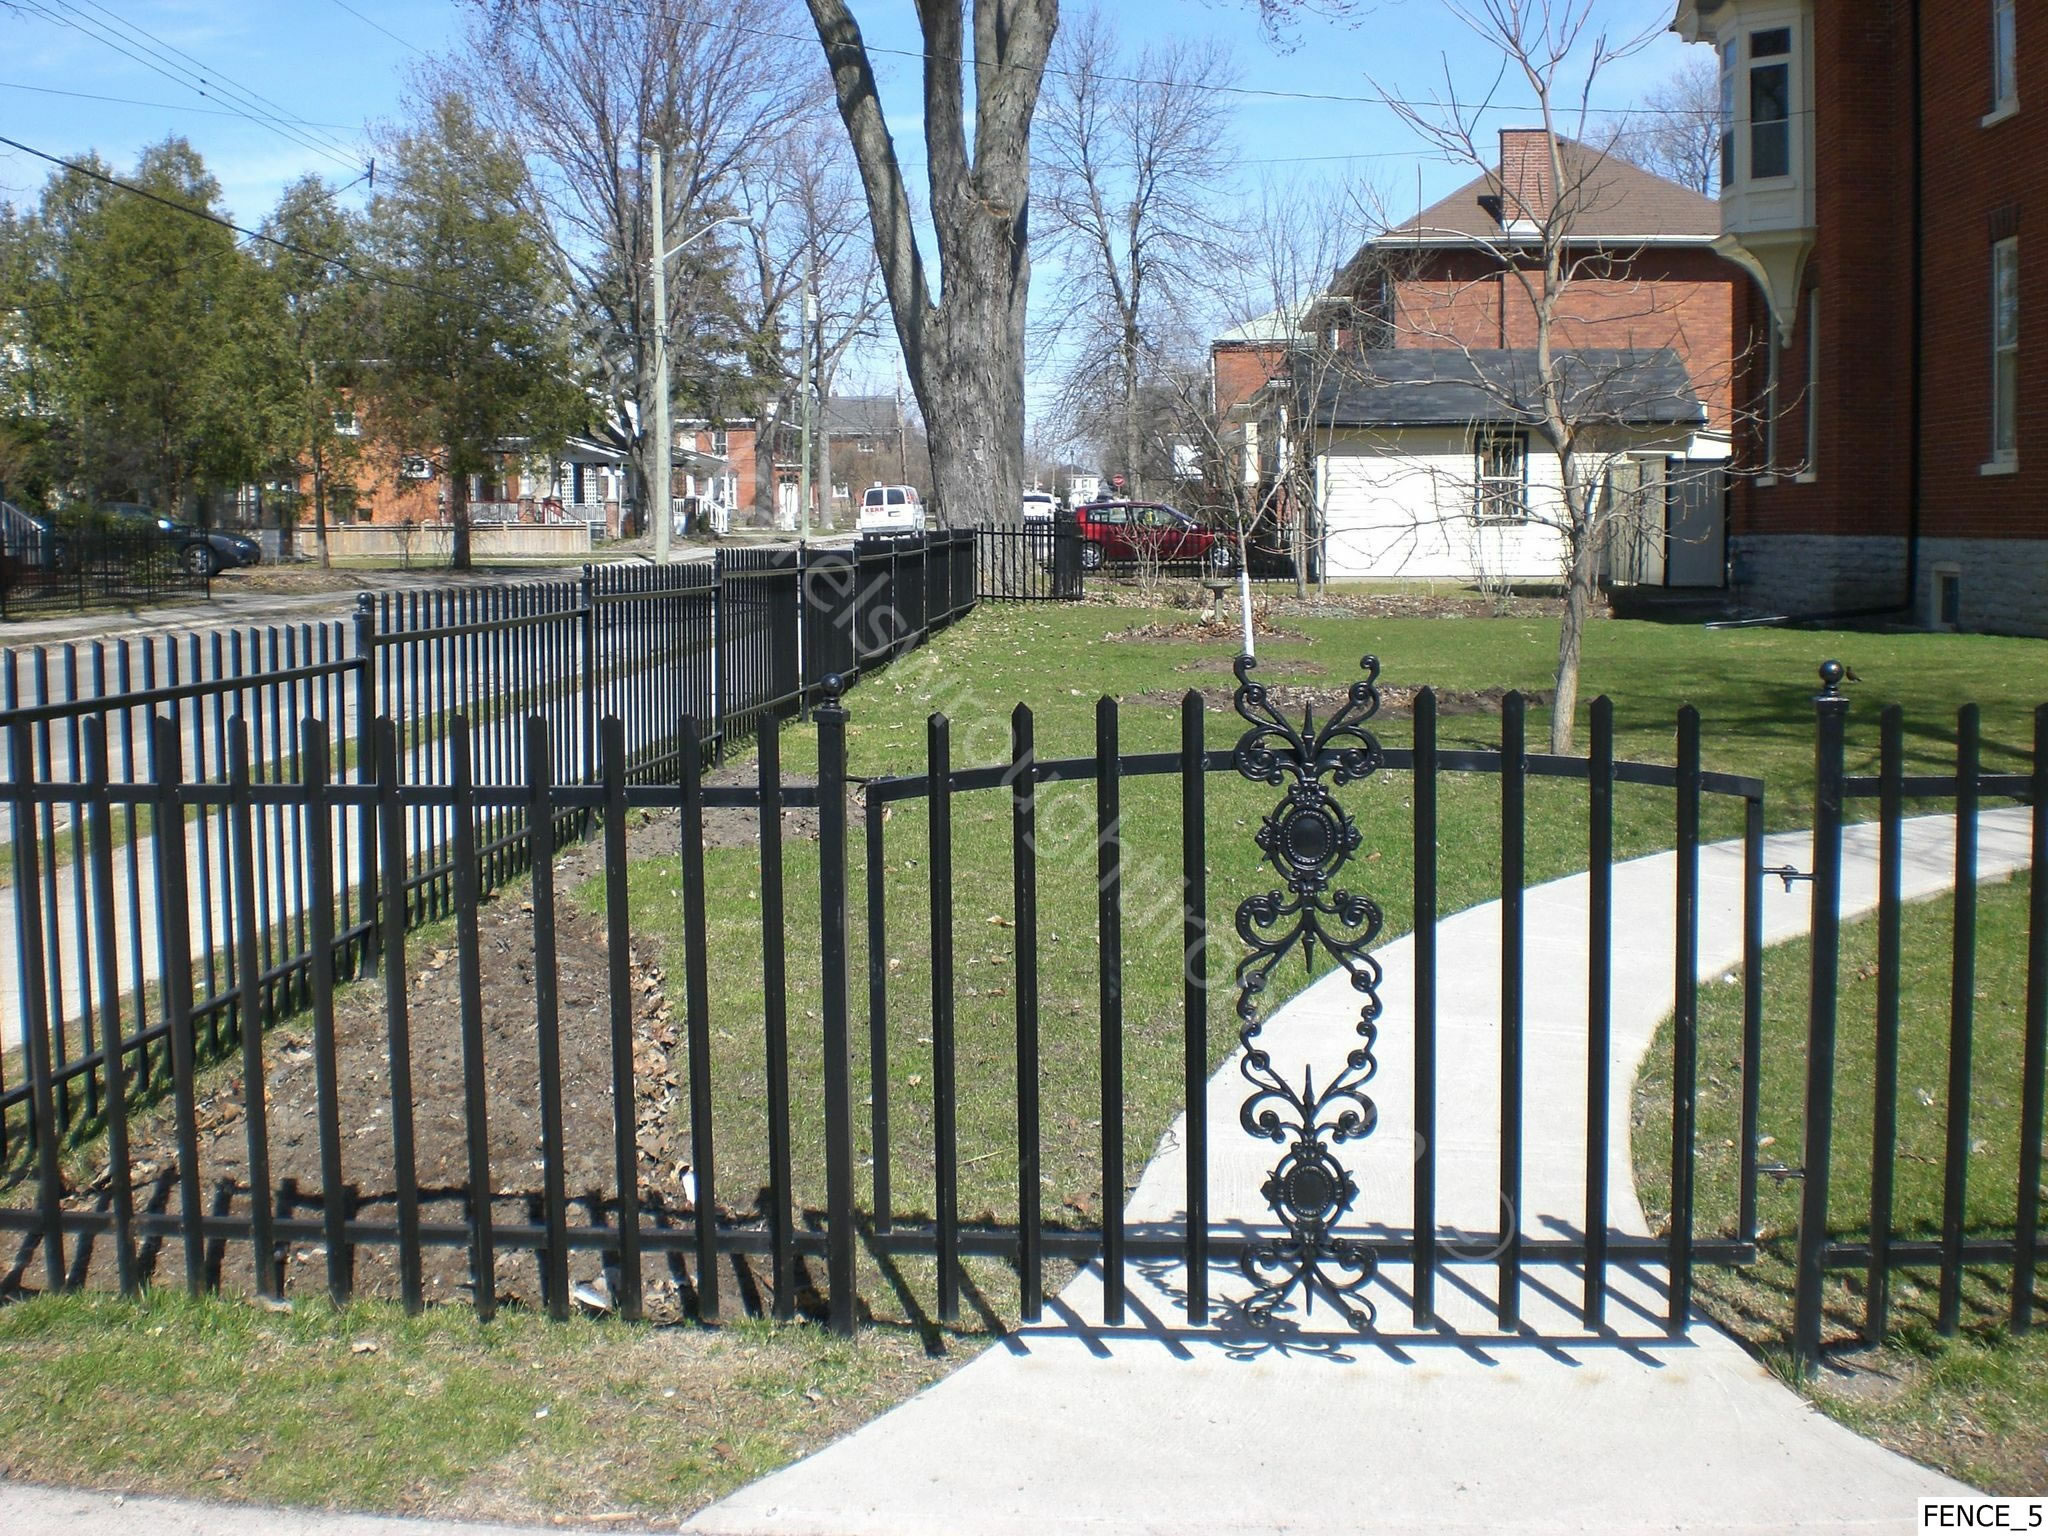 Iron gates fencing and